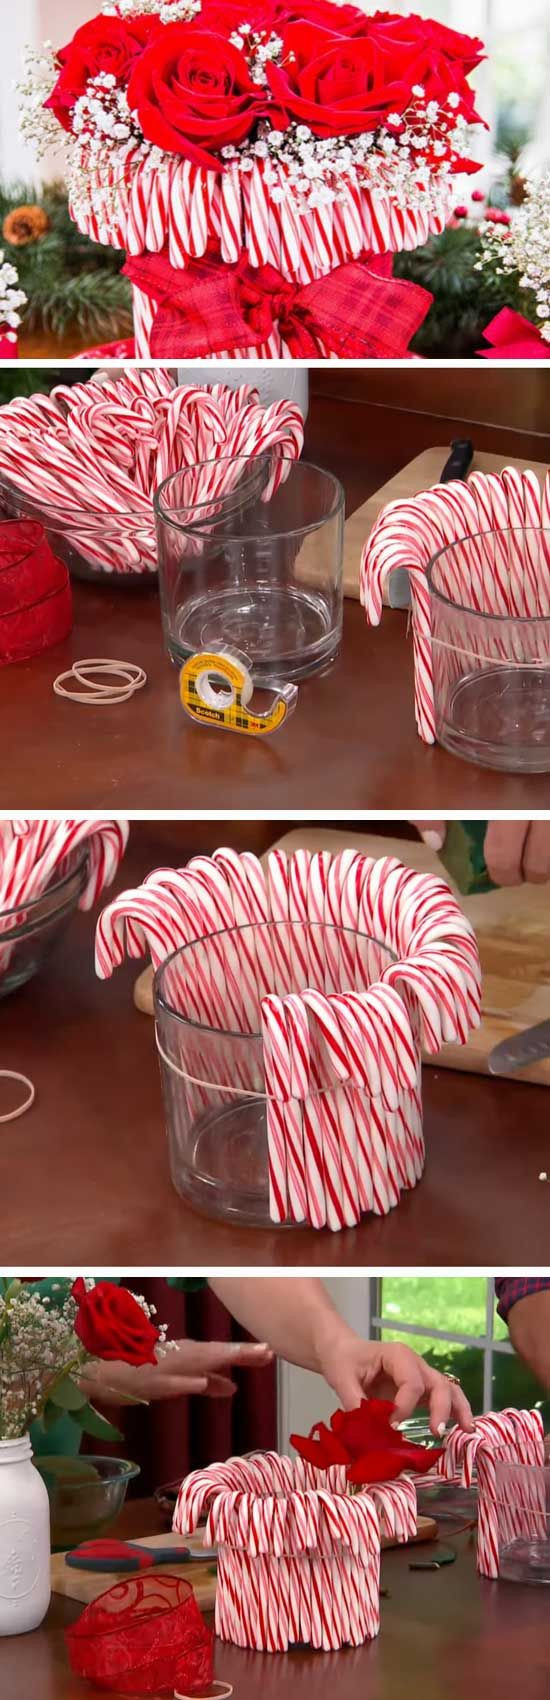 Christmas Party Themes Ideas For Adults  25 unique Christmas party games ideas on Pinterest